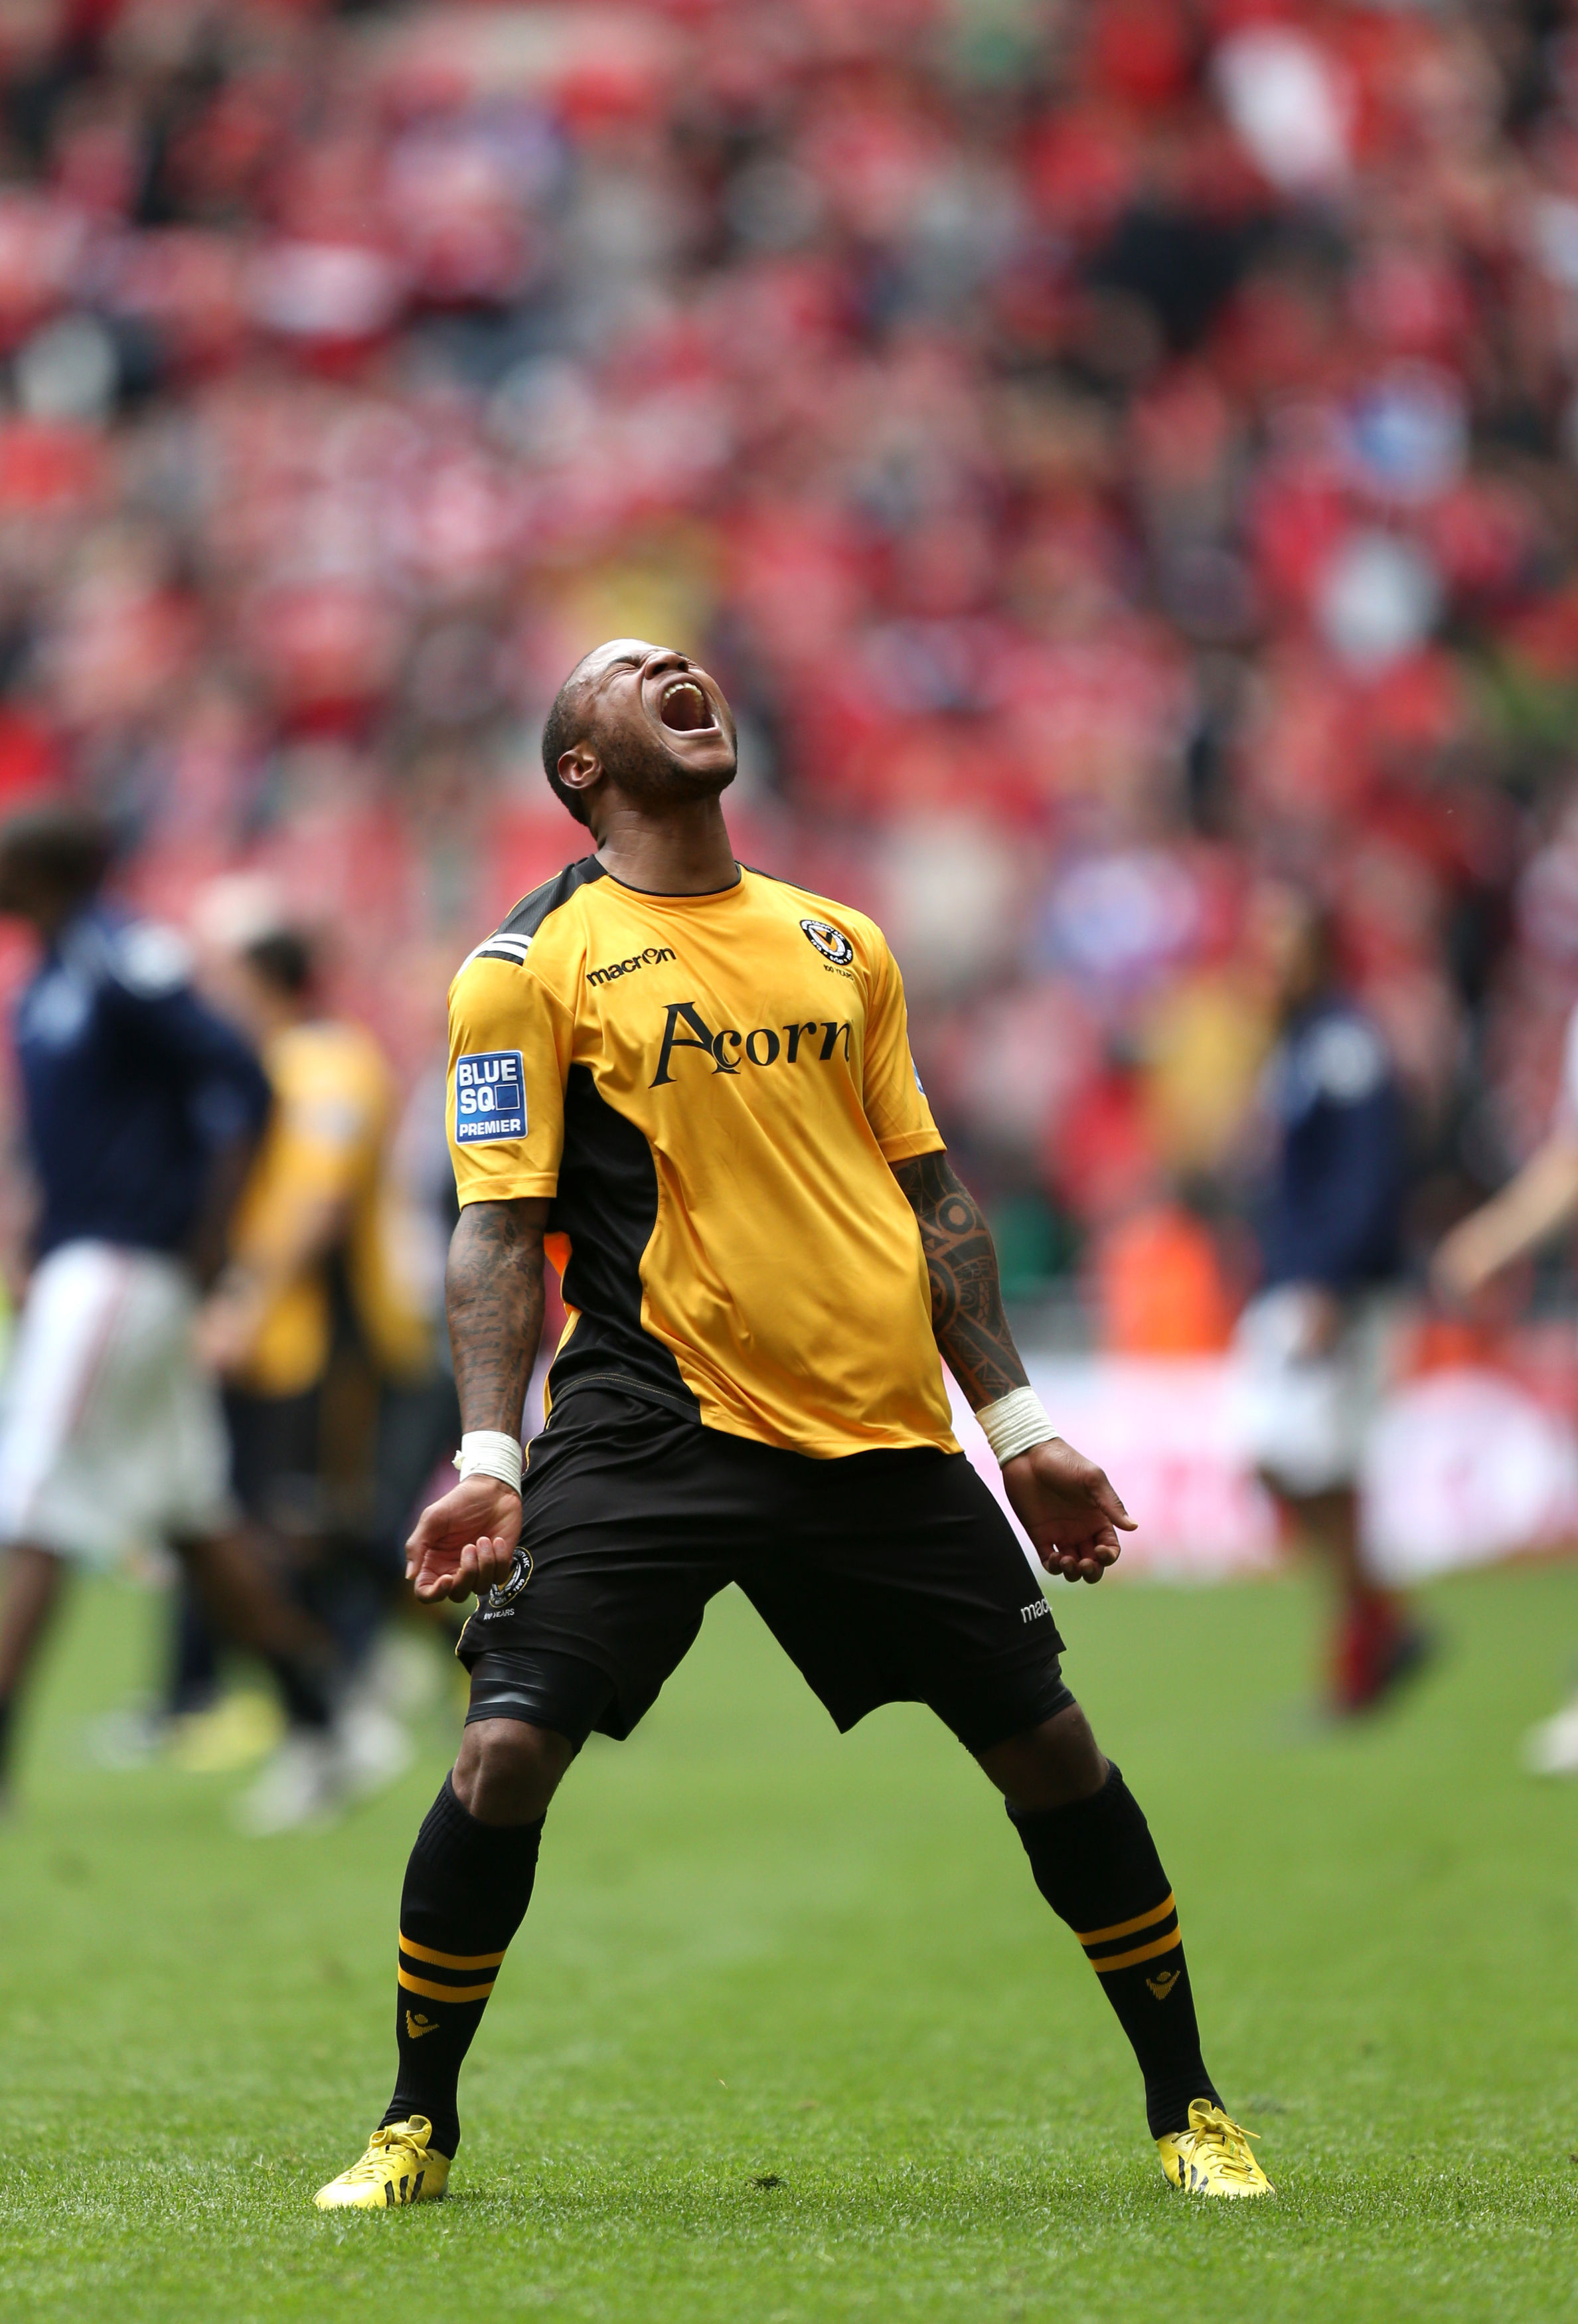 Newport County's Aaron O'Connor who scored their second goal of the game celebrates their victory after the Blue Square Premier League Play-Off Final at Wembley Stadium, London. PRESS ASSOCIATION Photo. Picture date: Sunday May 5, 2013. See PA sto